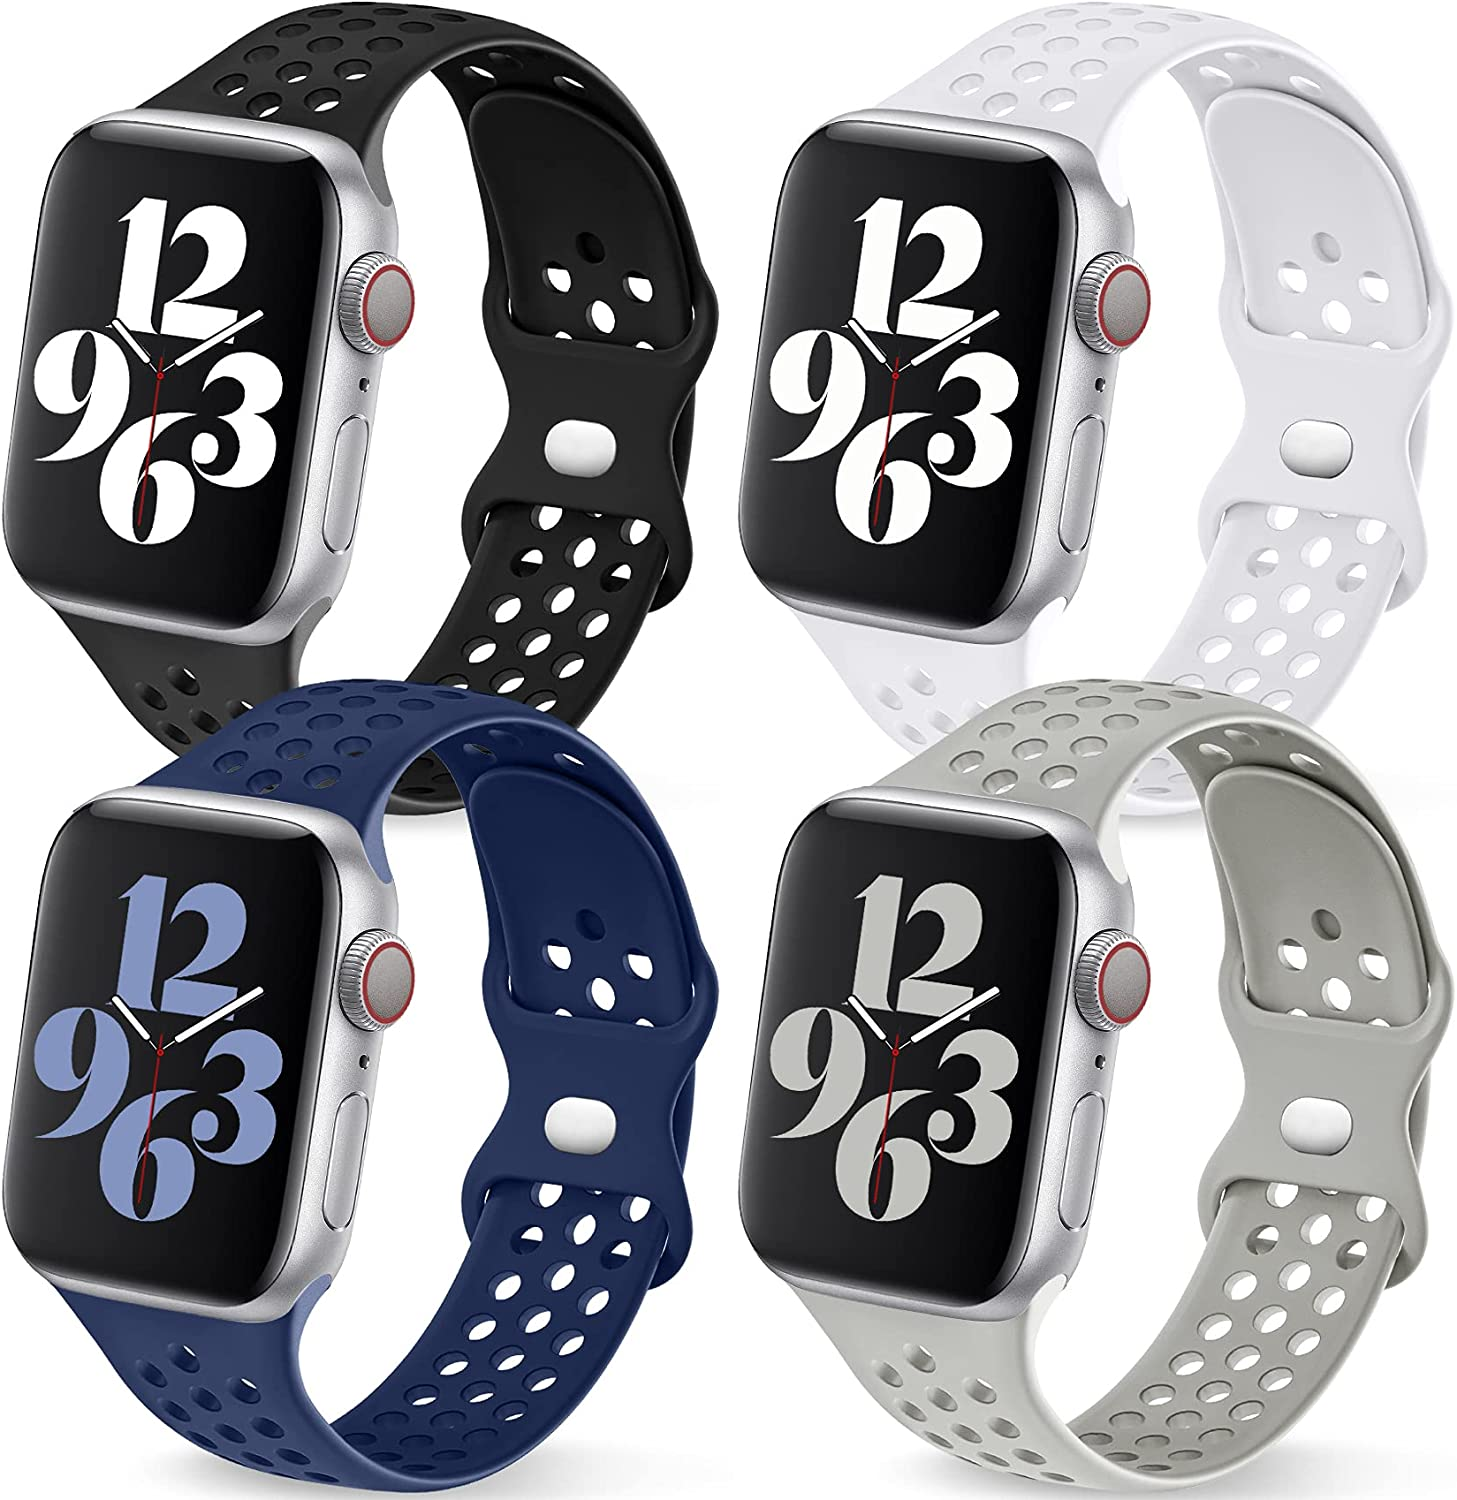 Getino Sport Bands Compatible with Apple Watch Band 40mm 41mm 38mm 42mm 44mm 45mm for Women Men, Cute Stylish Soft Slicone Sport Strap for iWatch Series 7 6 5 4 3 2 1 SE, Black/White/Dark Blue/Gray